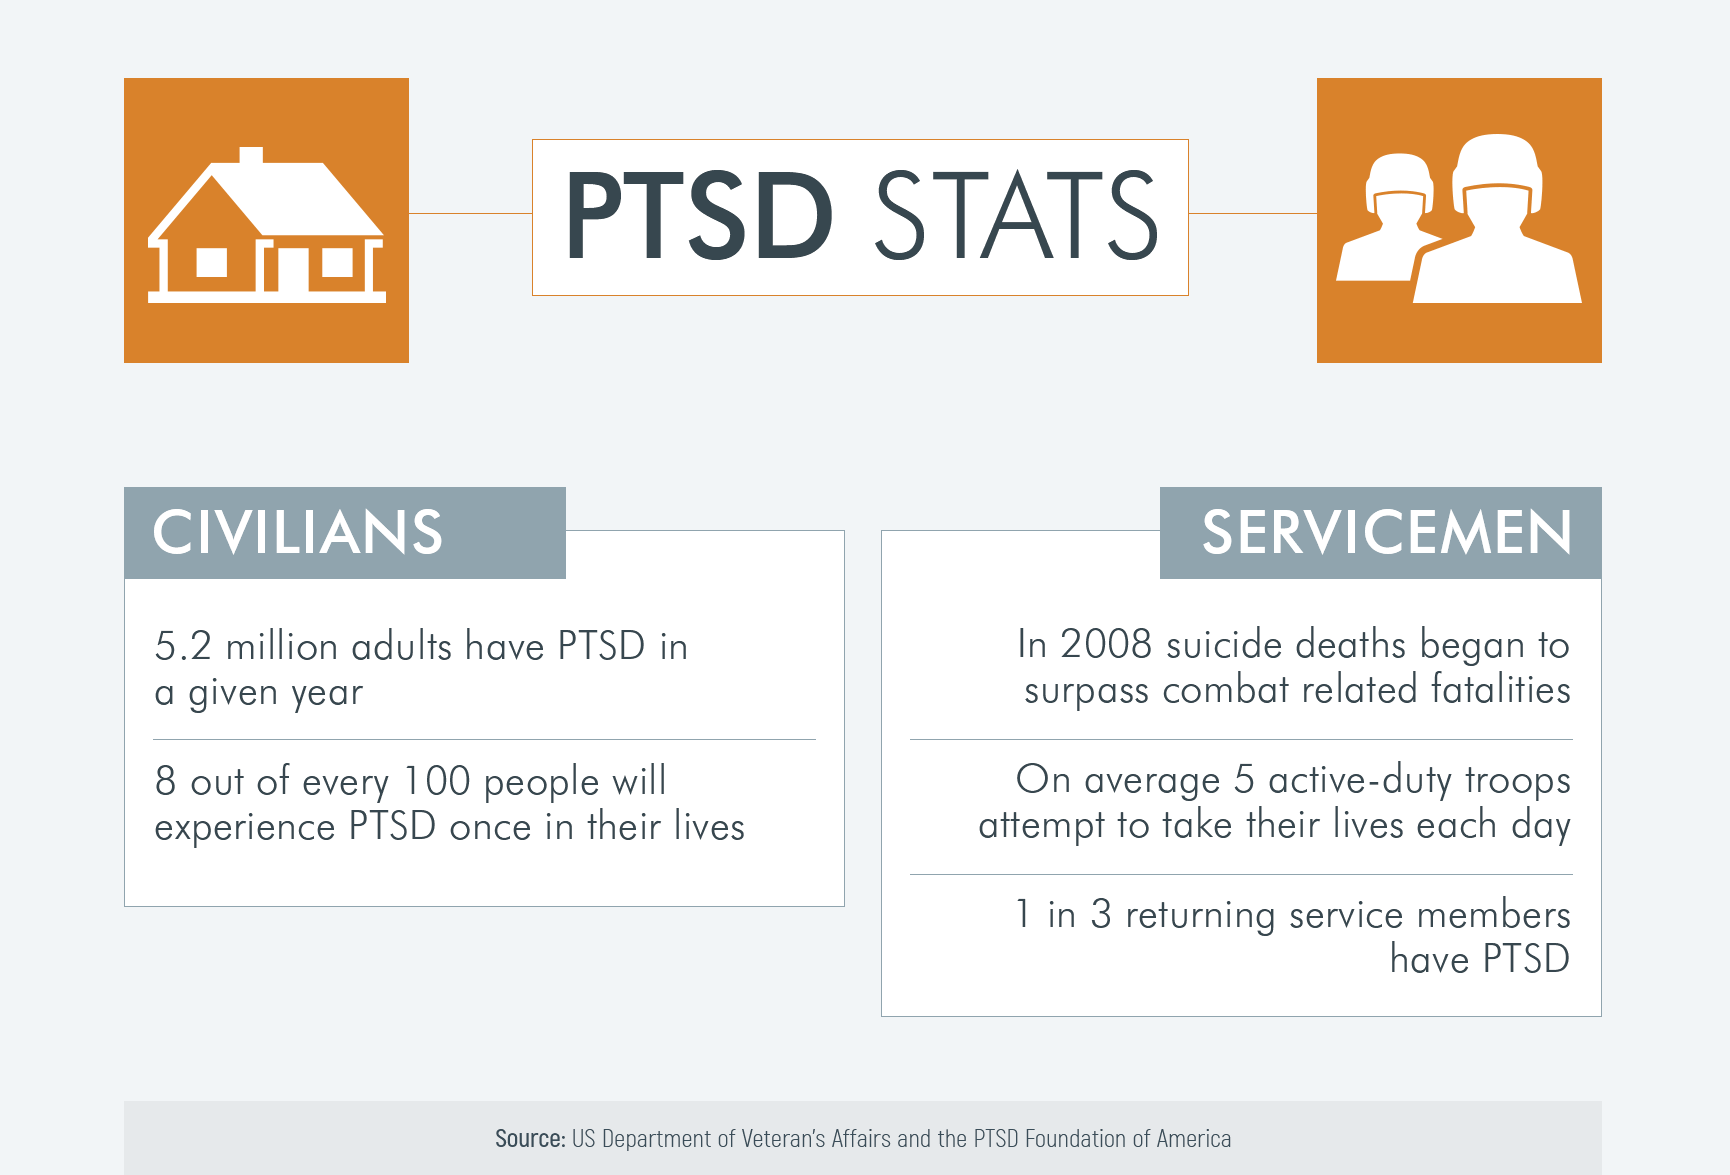 statistics on PTSD in civilians and military men